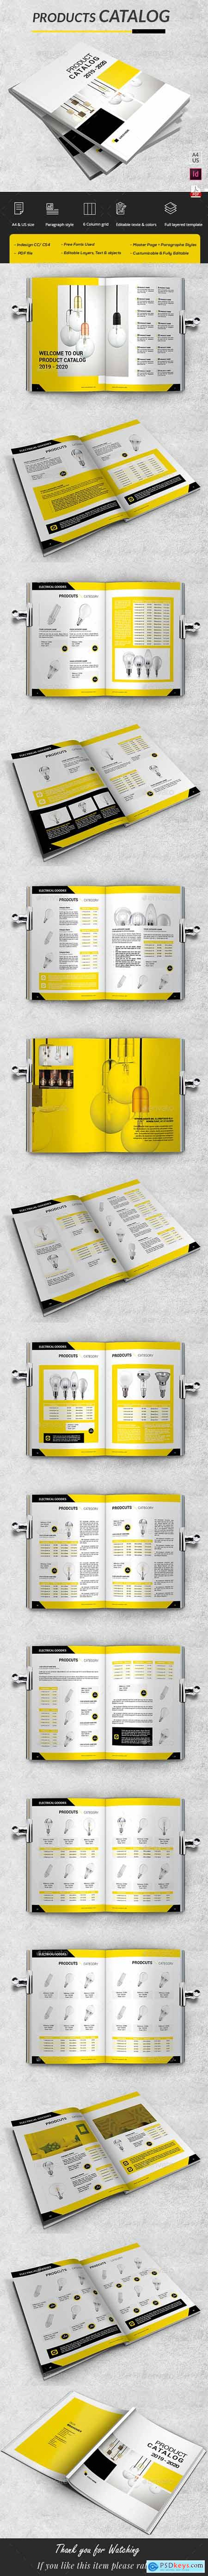 Industrial Catalog Products A4